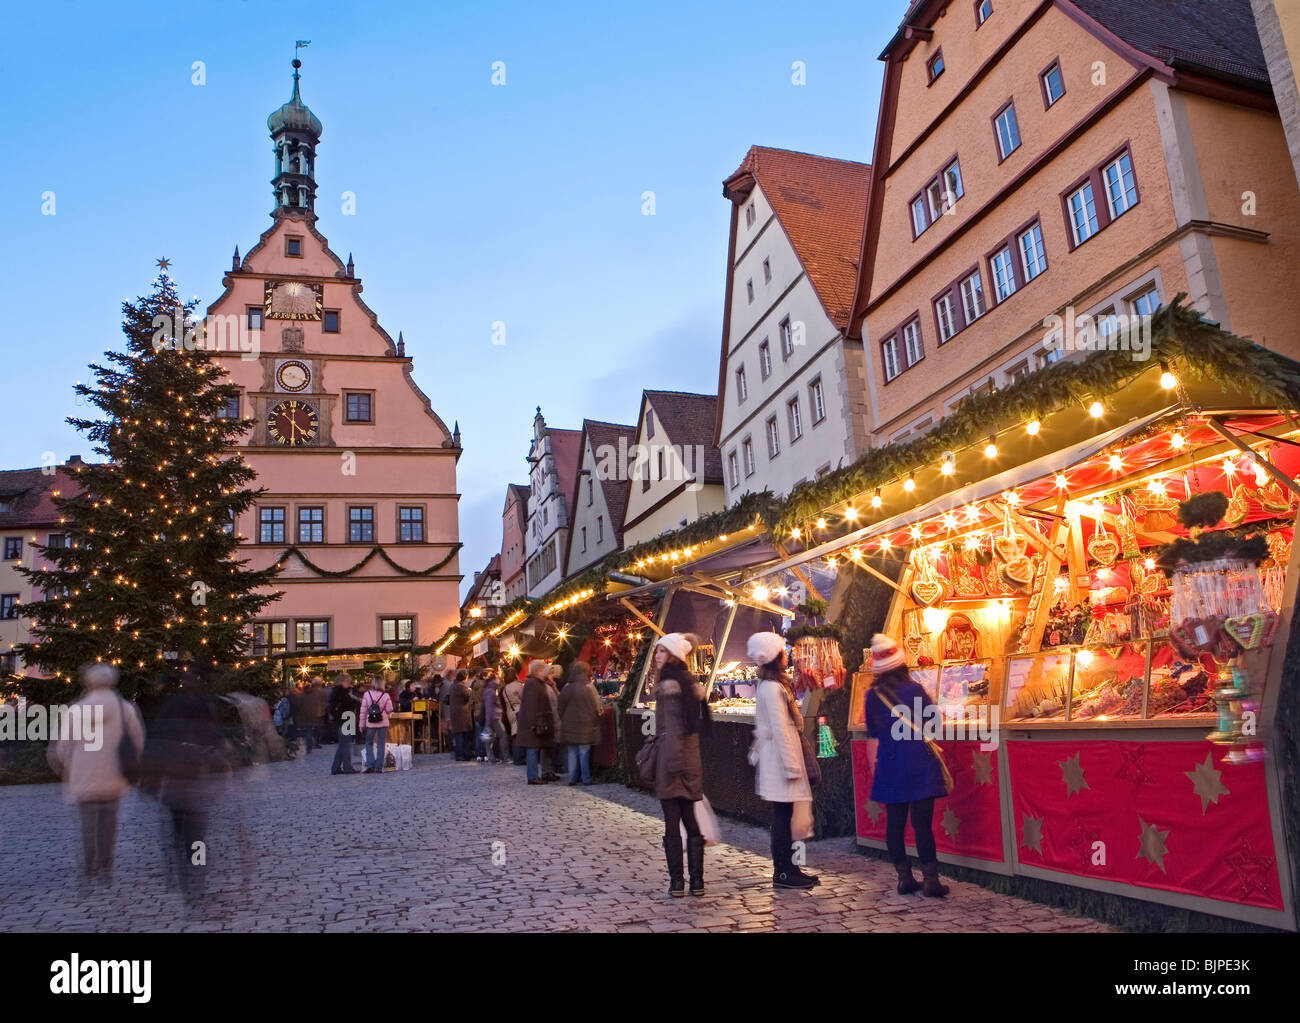 Christmas Market, Rothenburg ob der Tauber, Bavaria, Germany Stock ...